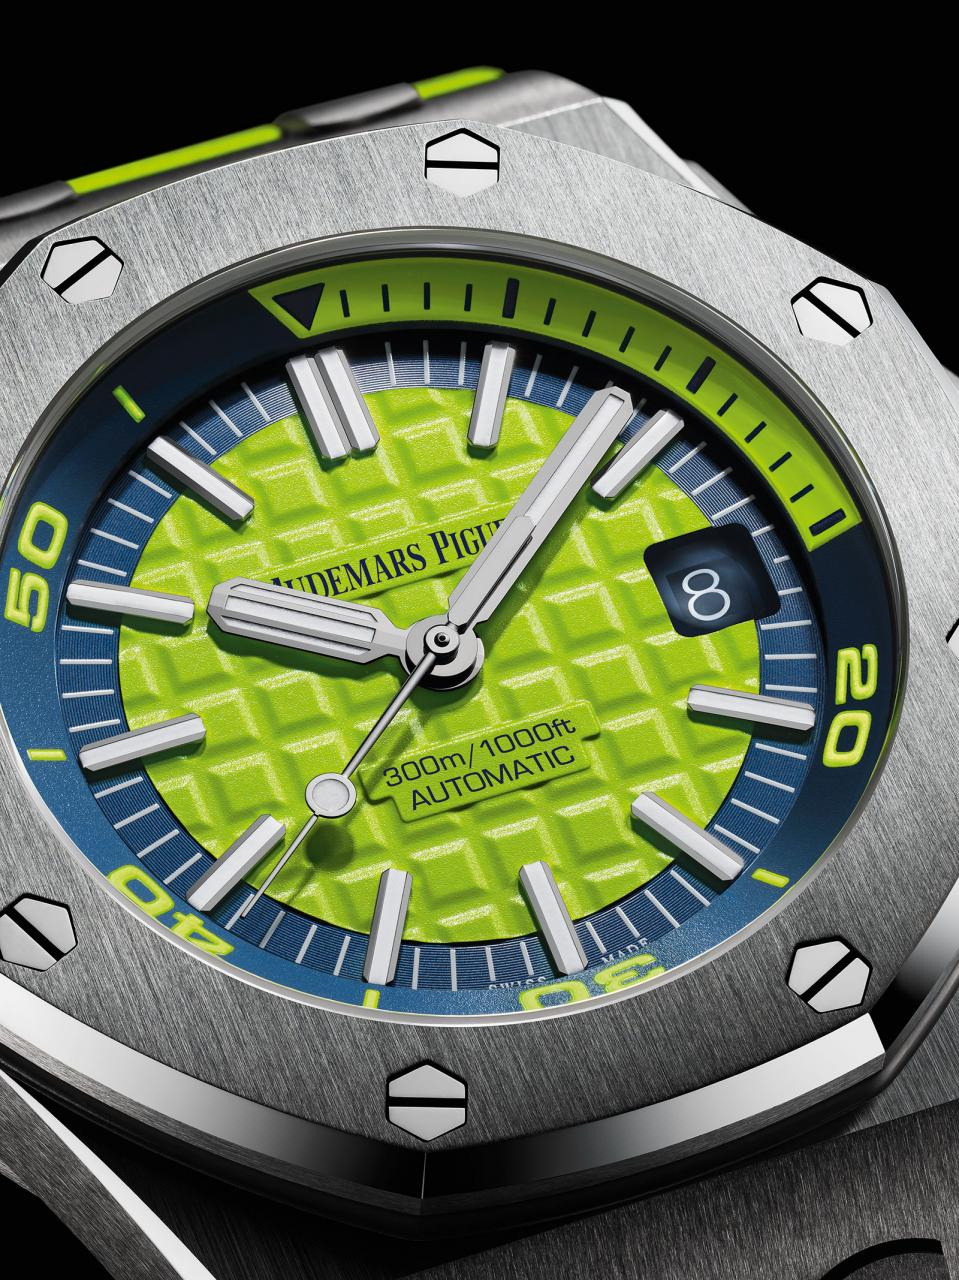 Audemars Piguet Royal Oak Offshore Diver green